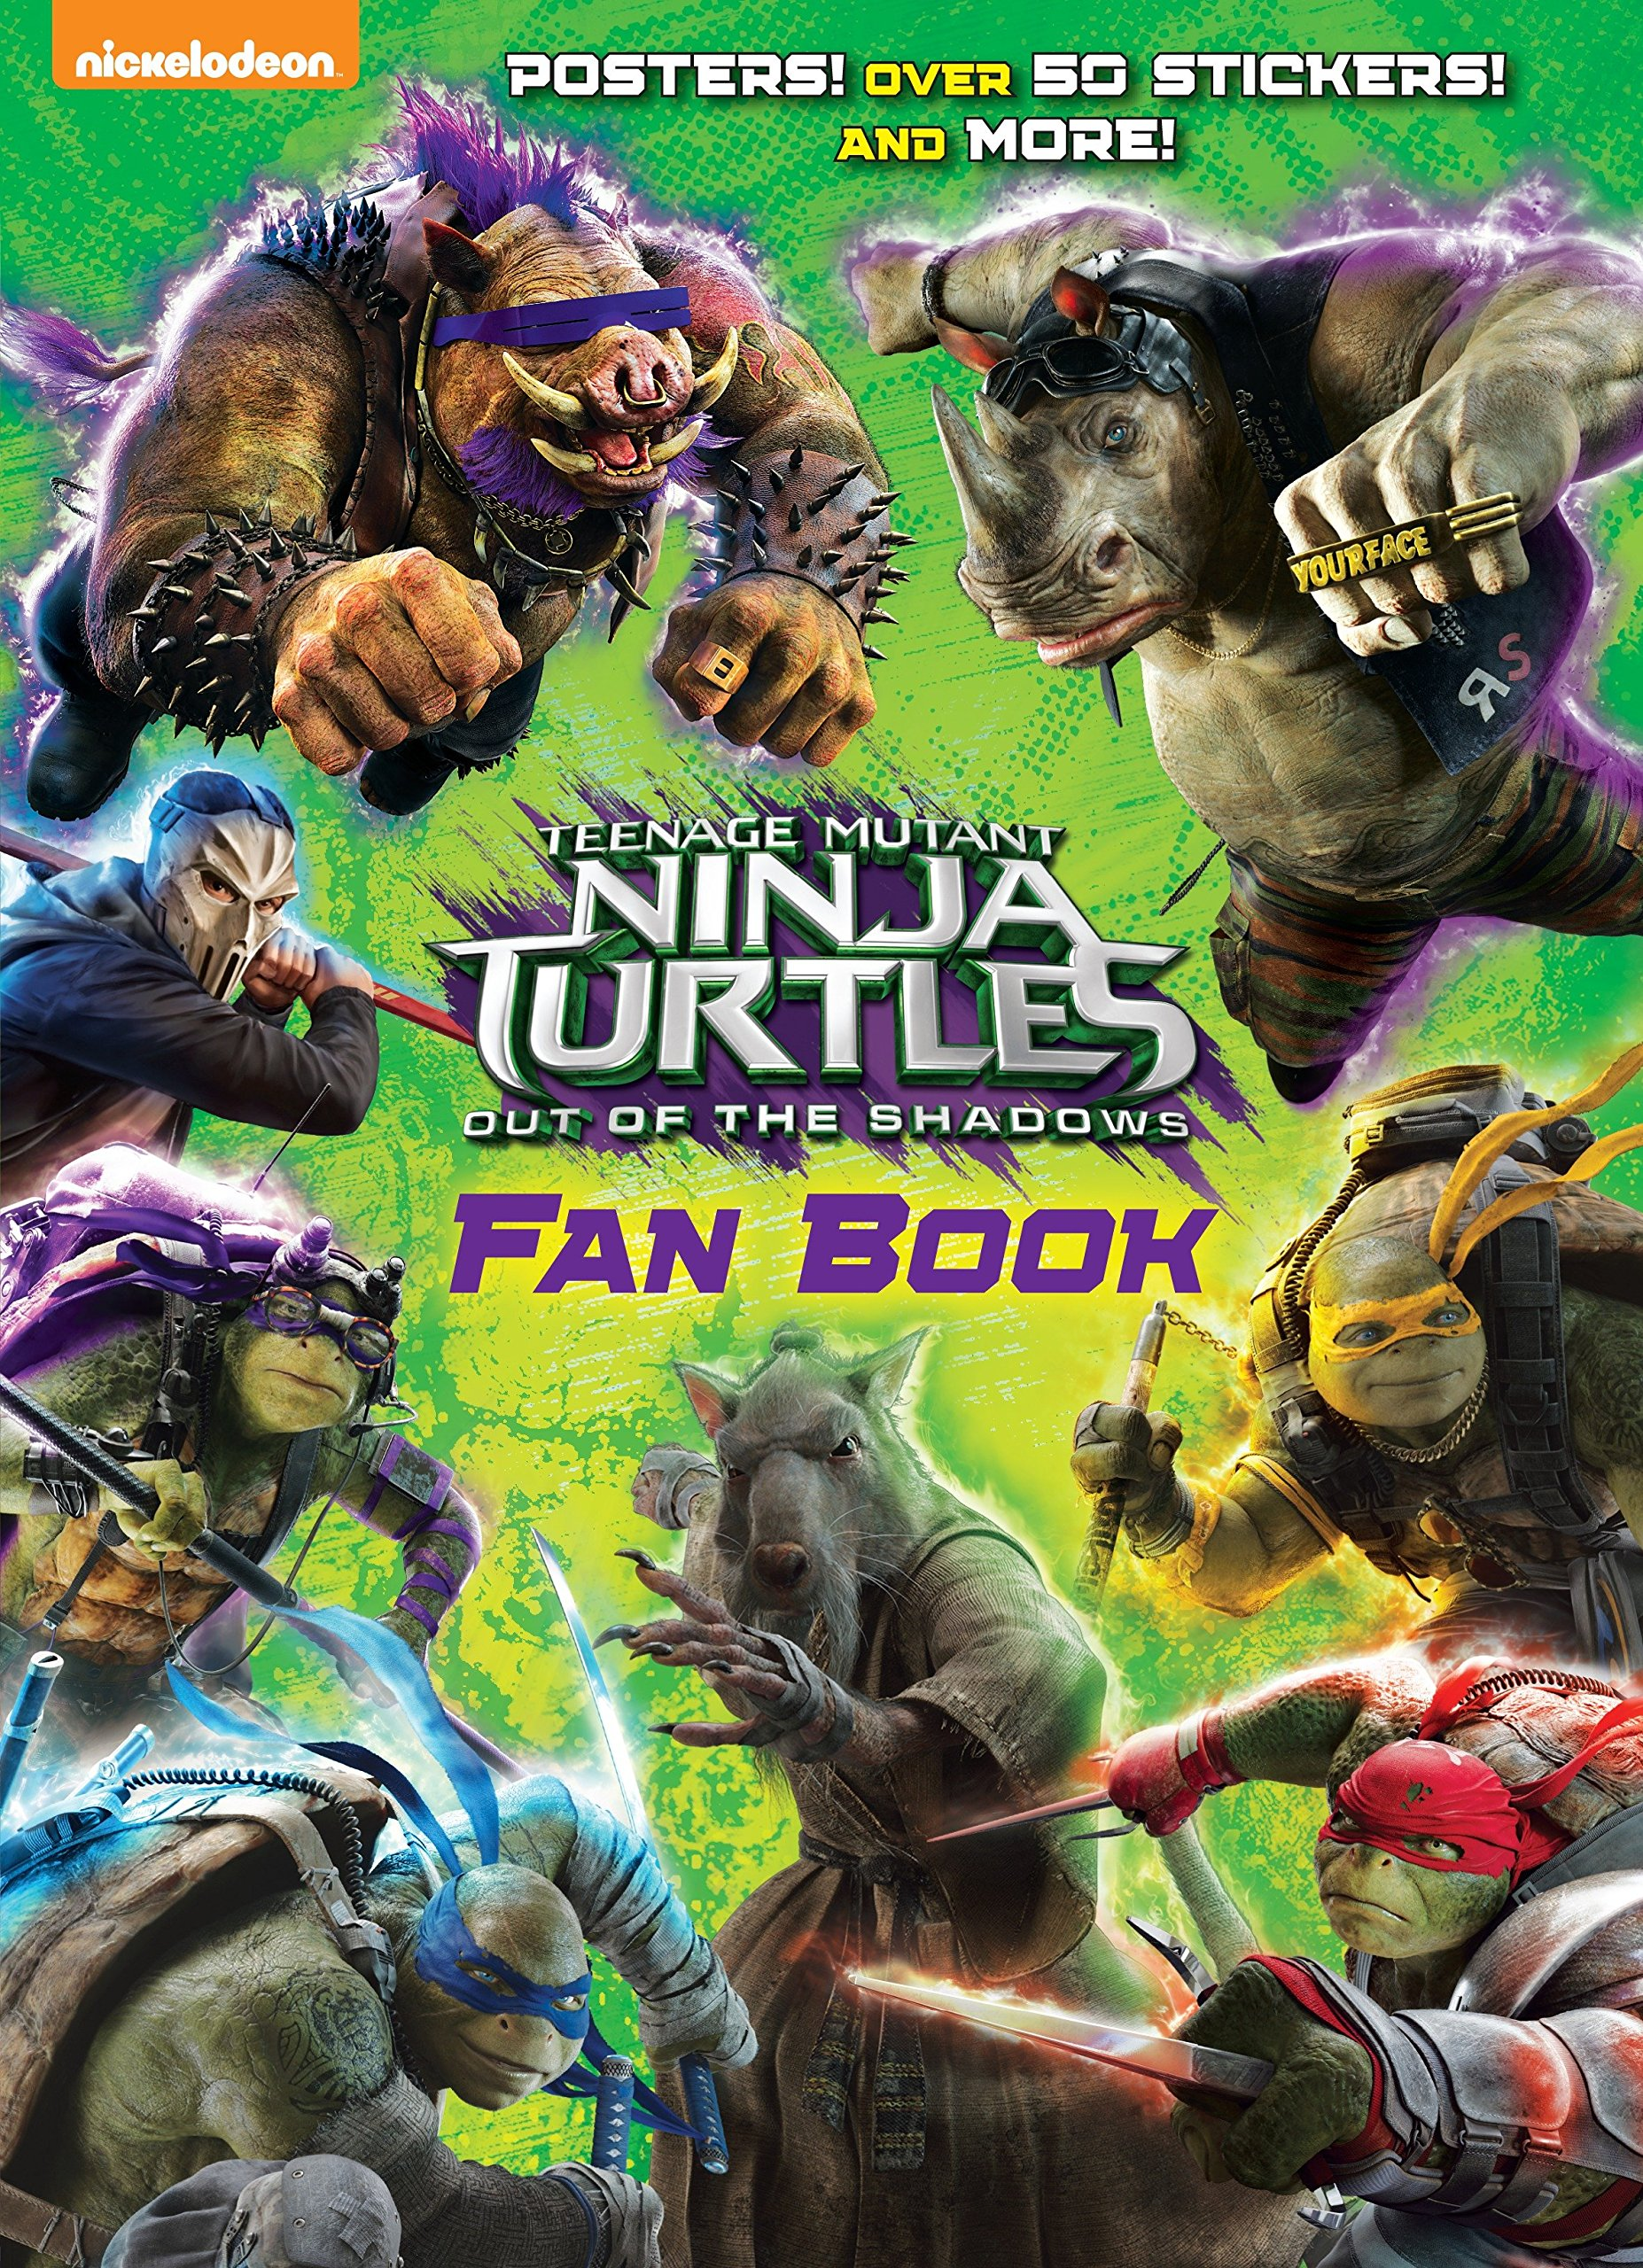 Amazon Com Teenage Mutant Ninja Turtles Out Of The Shadows Fan Book Teenage Mutant Ninja Turtles Out Of The Shadows 9781101940303 Golden Books Golden Books Books